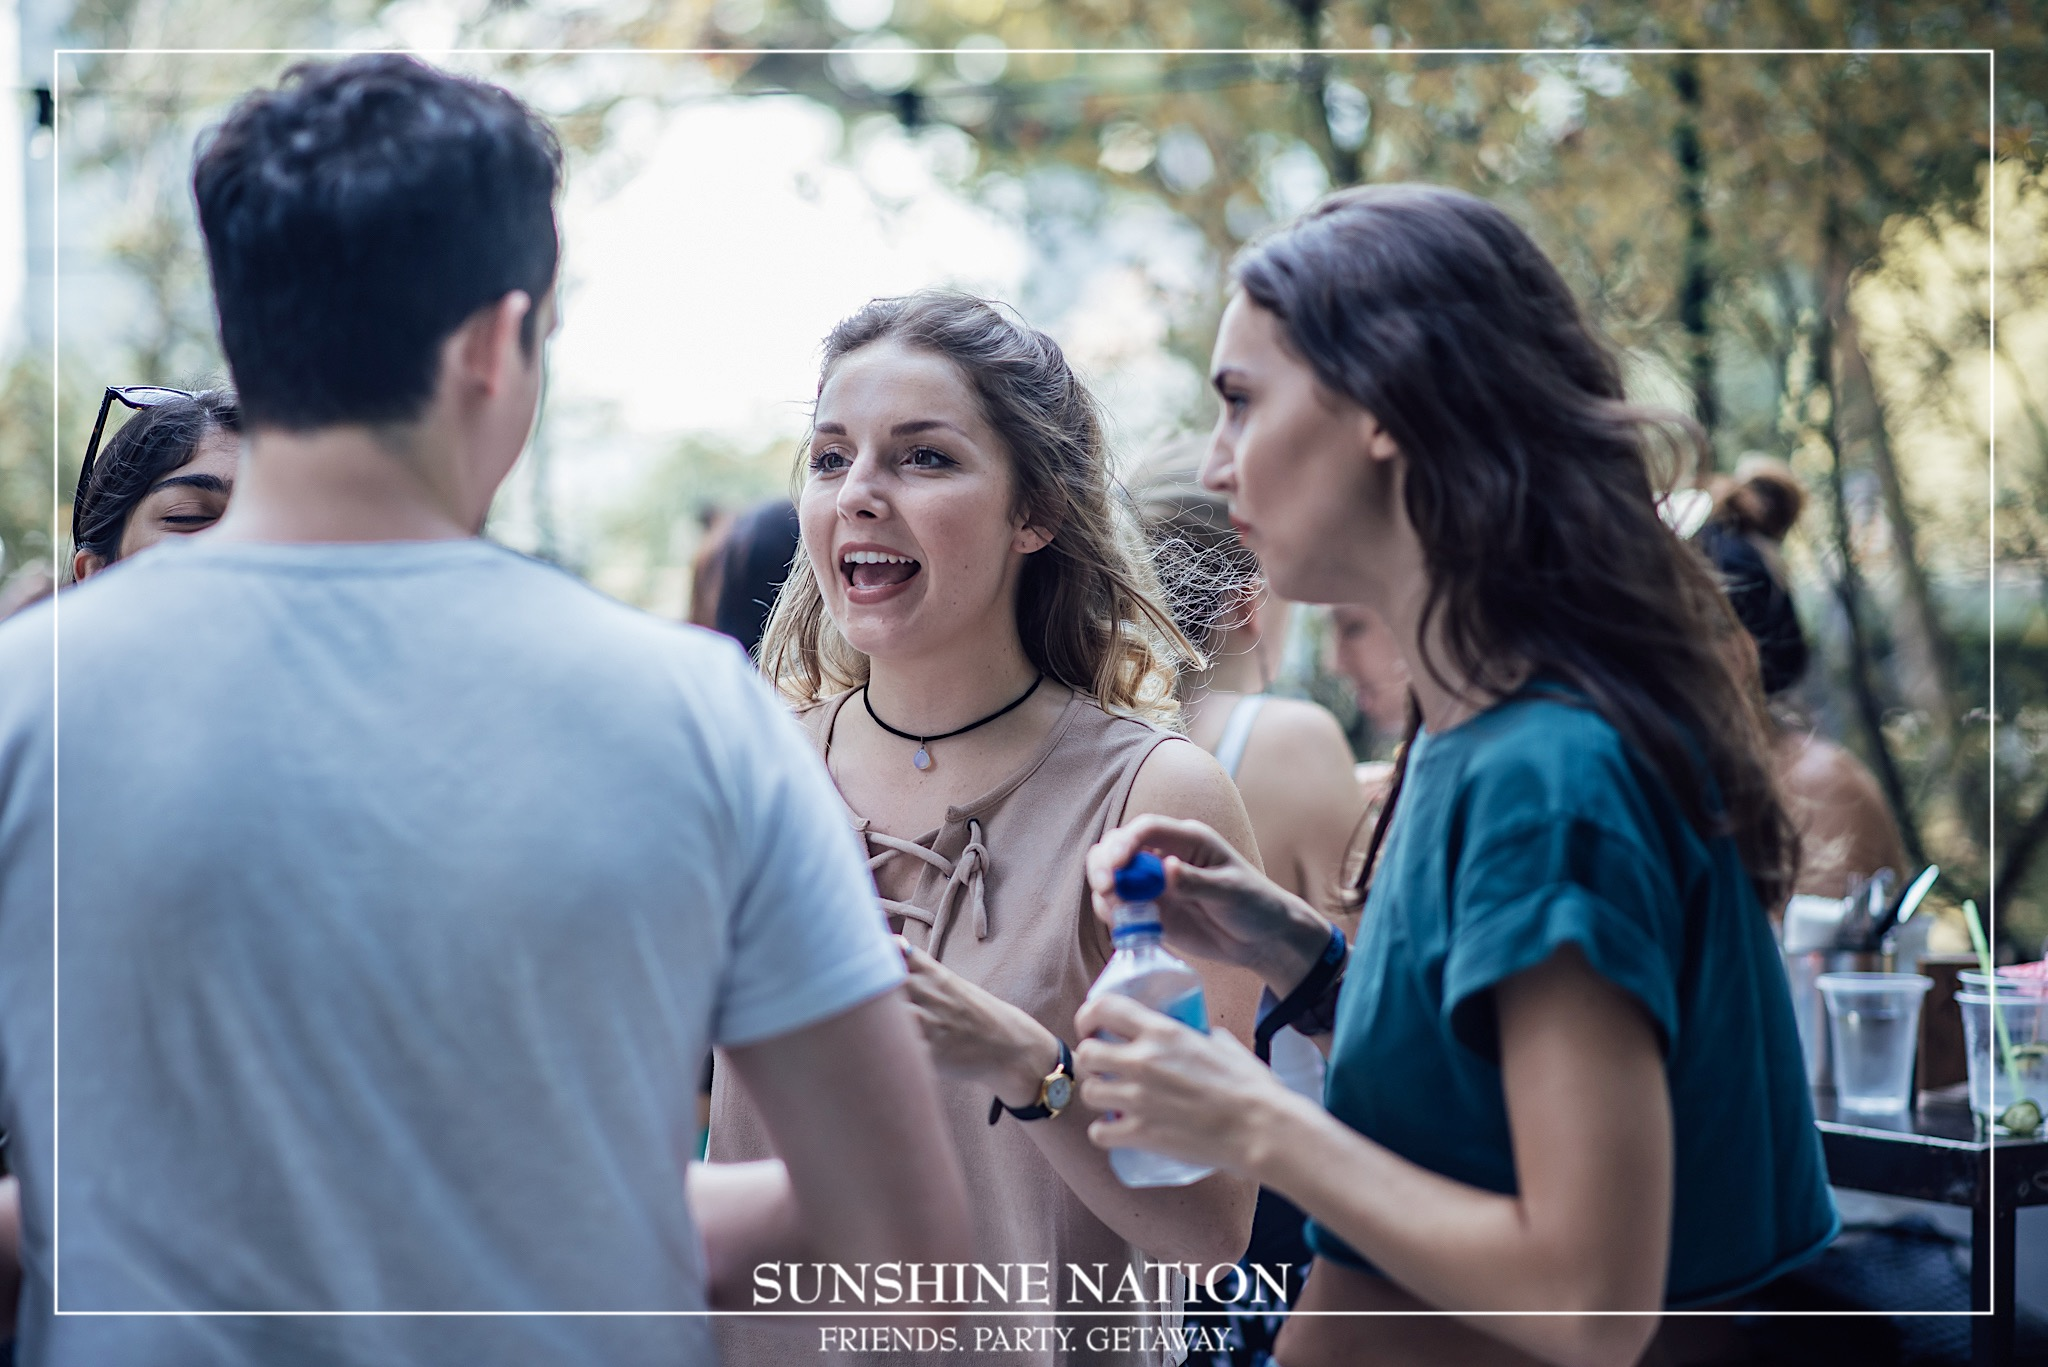 18092016_SunshineNation_Colossal013_Watermarked.jpg